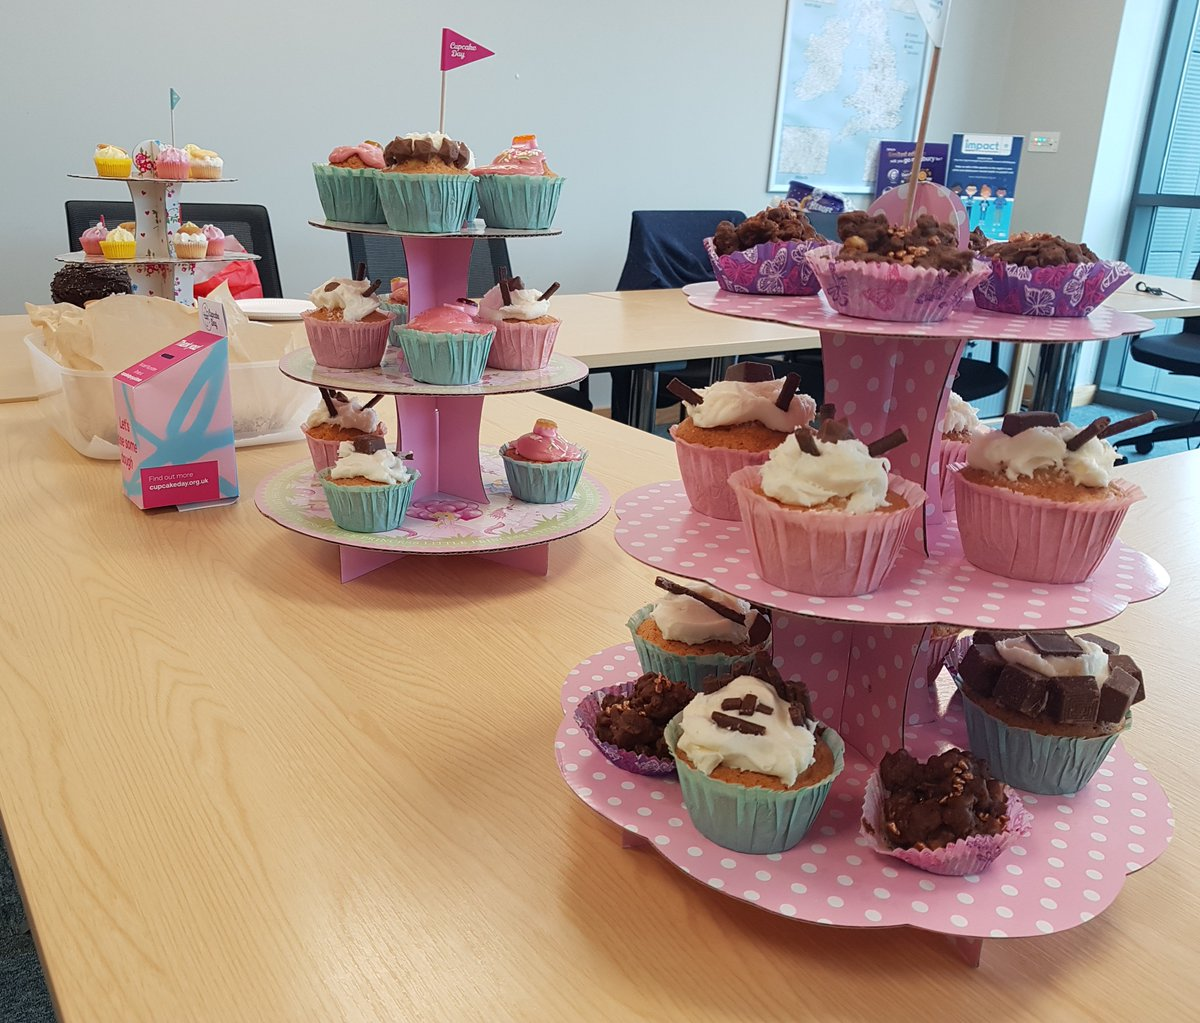 We're all about the cake today at @NisaRetail Partner Support Centre! 🍰 😋 We're getting involved in national #CupcakeDay and raising vital funds for @alzheimerssoc to help to fight against dementia and Alzheimer's disease💙